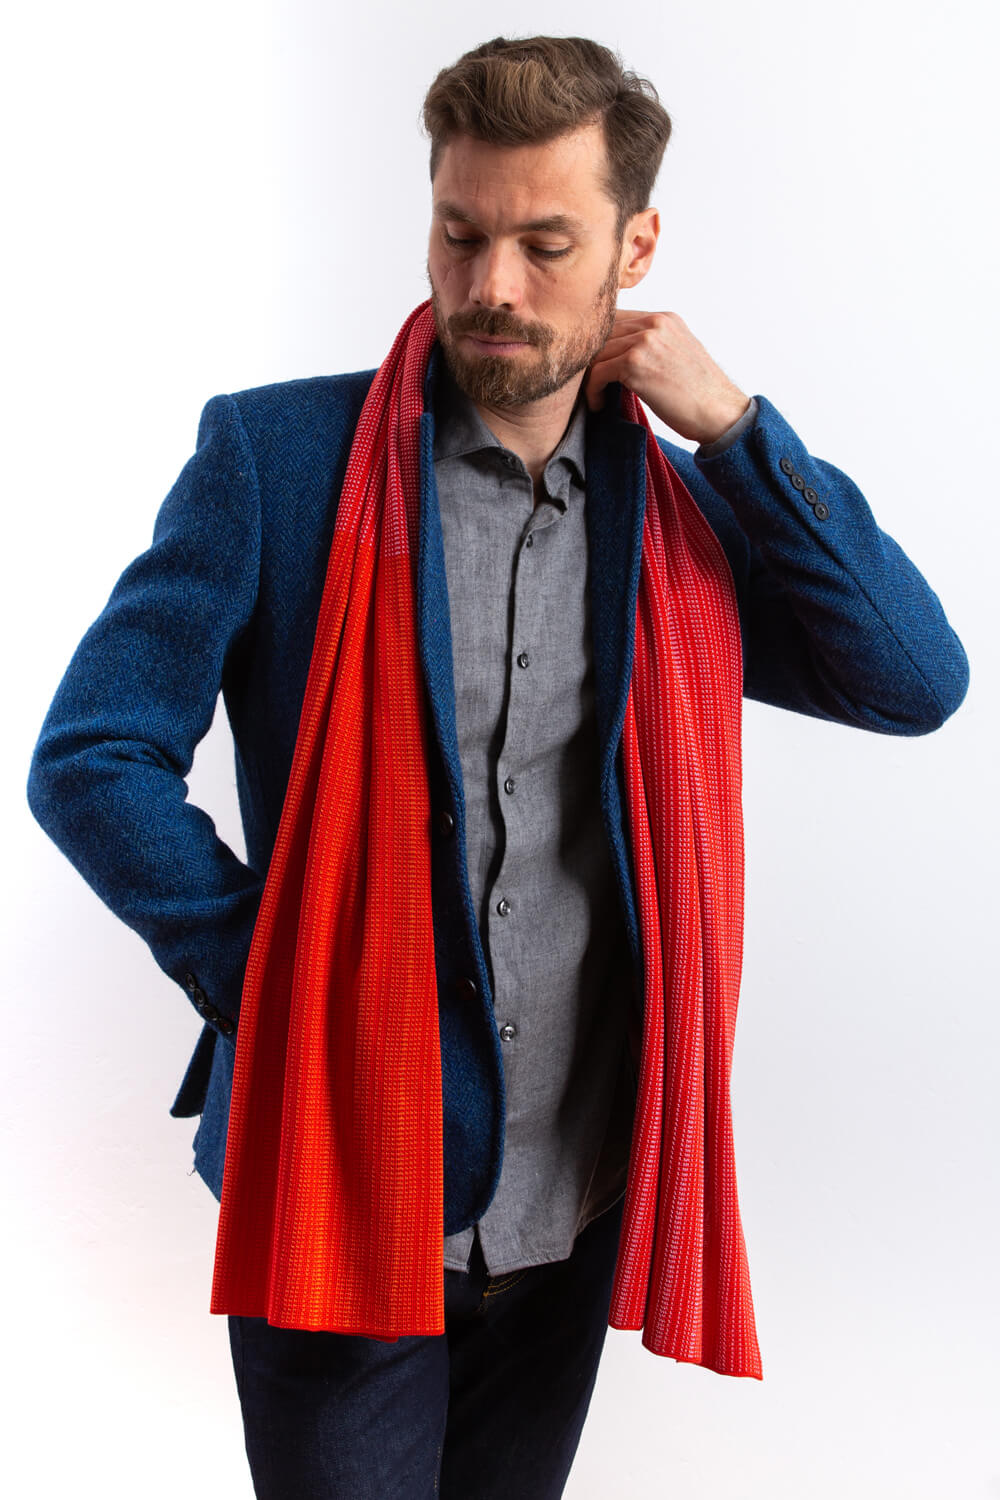 Large silk designer scarf for men. A red silk scarf, made in Scotland. Luxury Scottish Knitwear design by Collingwood-Norris.jpg